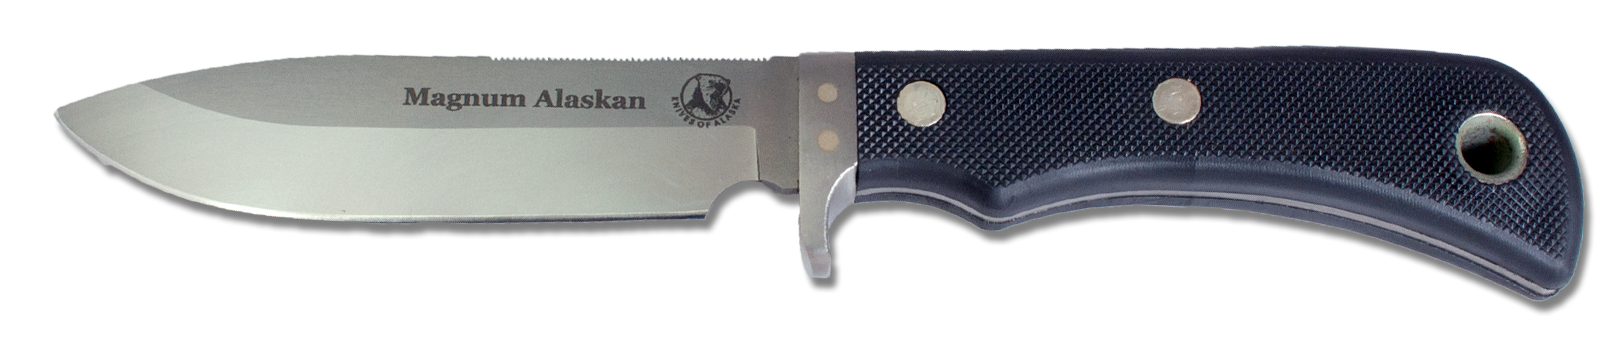 MAGNUM ALASKAN -  Suregrip by Knives of Alaska